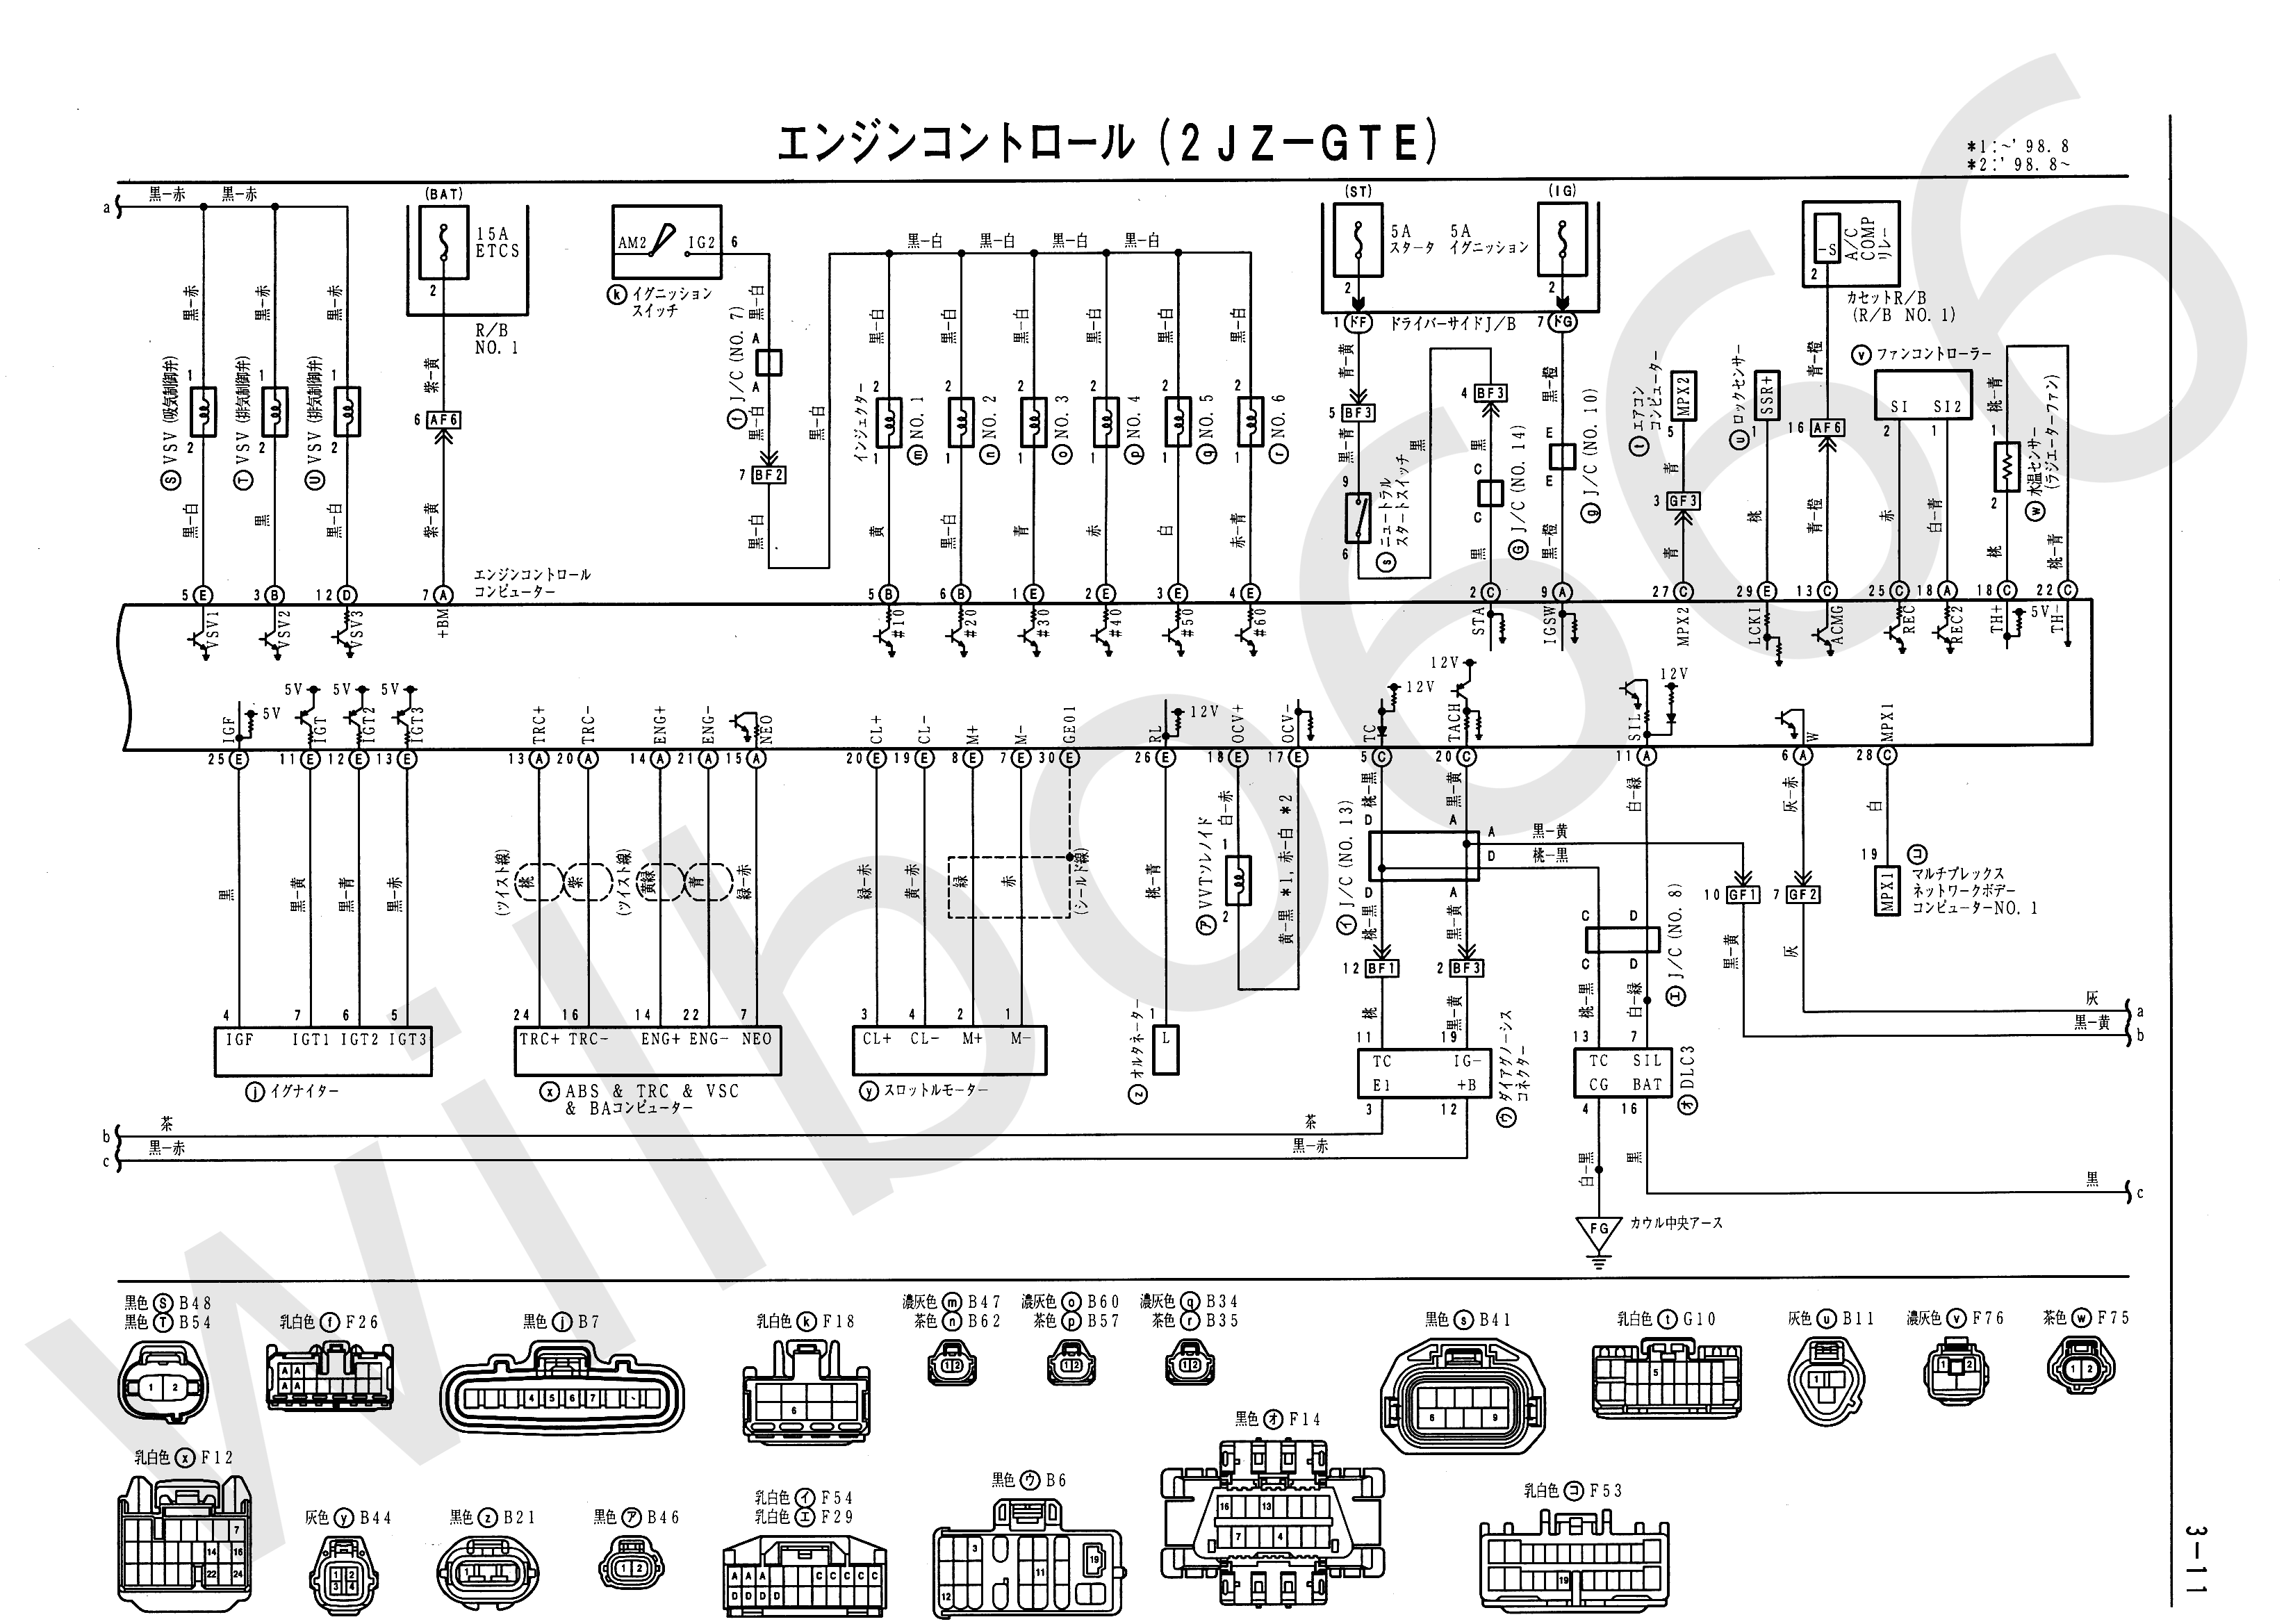 JZS161 Electrical Wiring Diagram 6748505 3 11 toyota vvti wiring diagram toyota wiring diagrams instruction ke70 wiring diagram pdf at soozxer.org